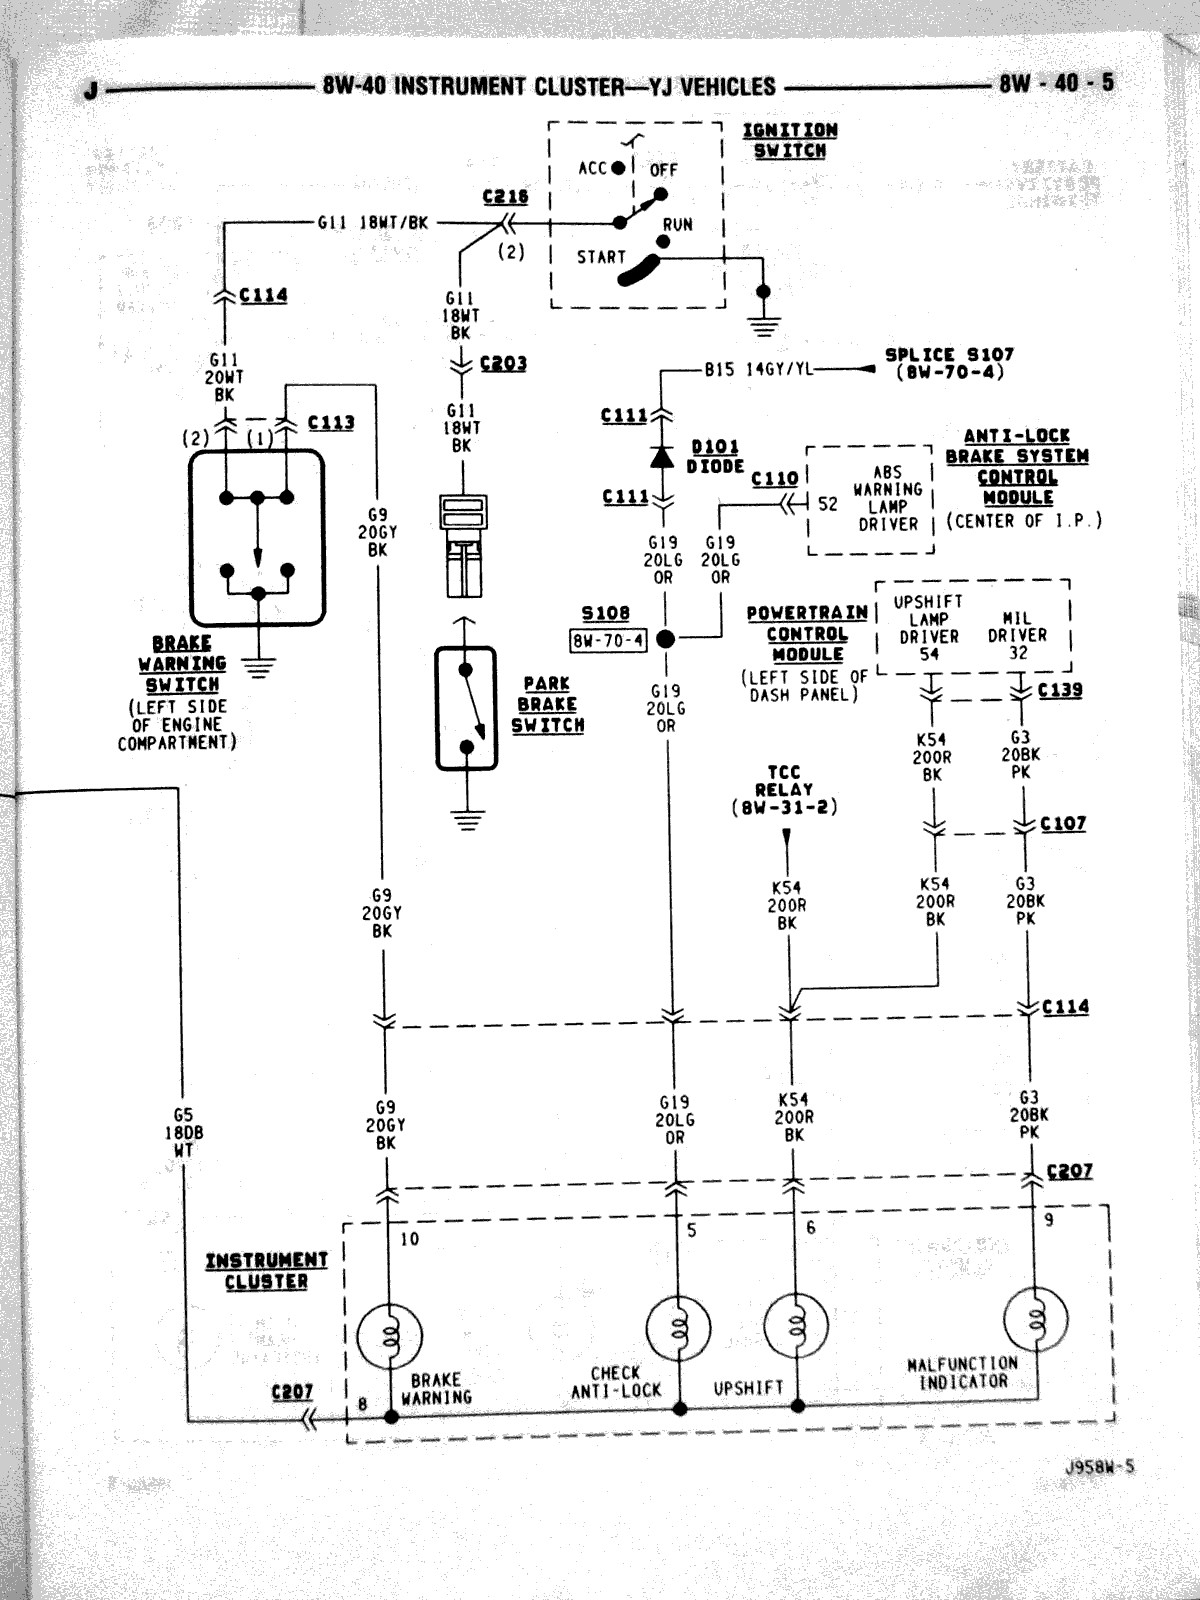 hight resolution of 1992 jeep yj fuse diagram wiring diagram world 92 jeep wrangler wiring diagram 1992 jeep yj fuse diagram